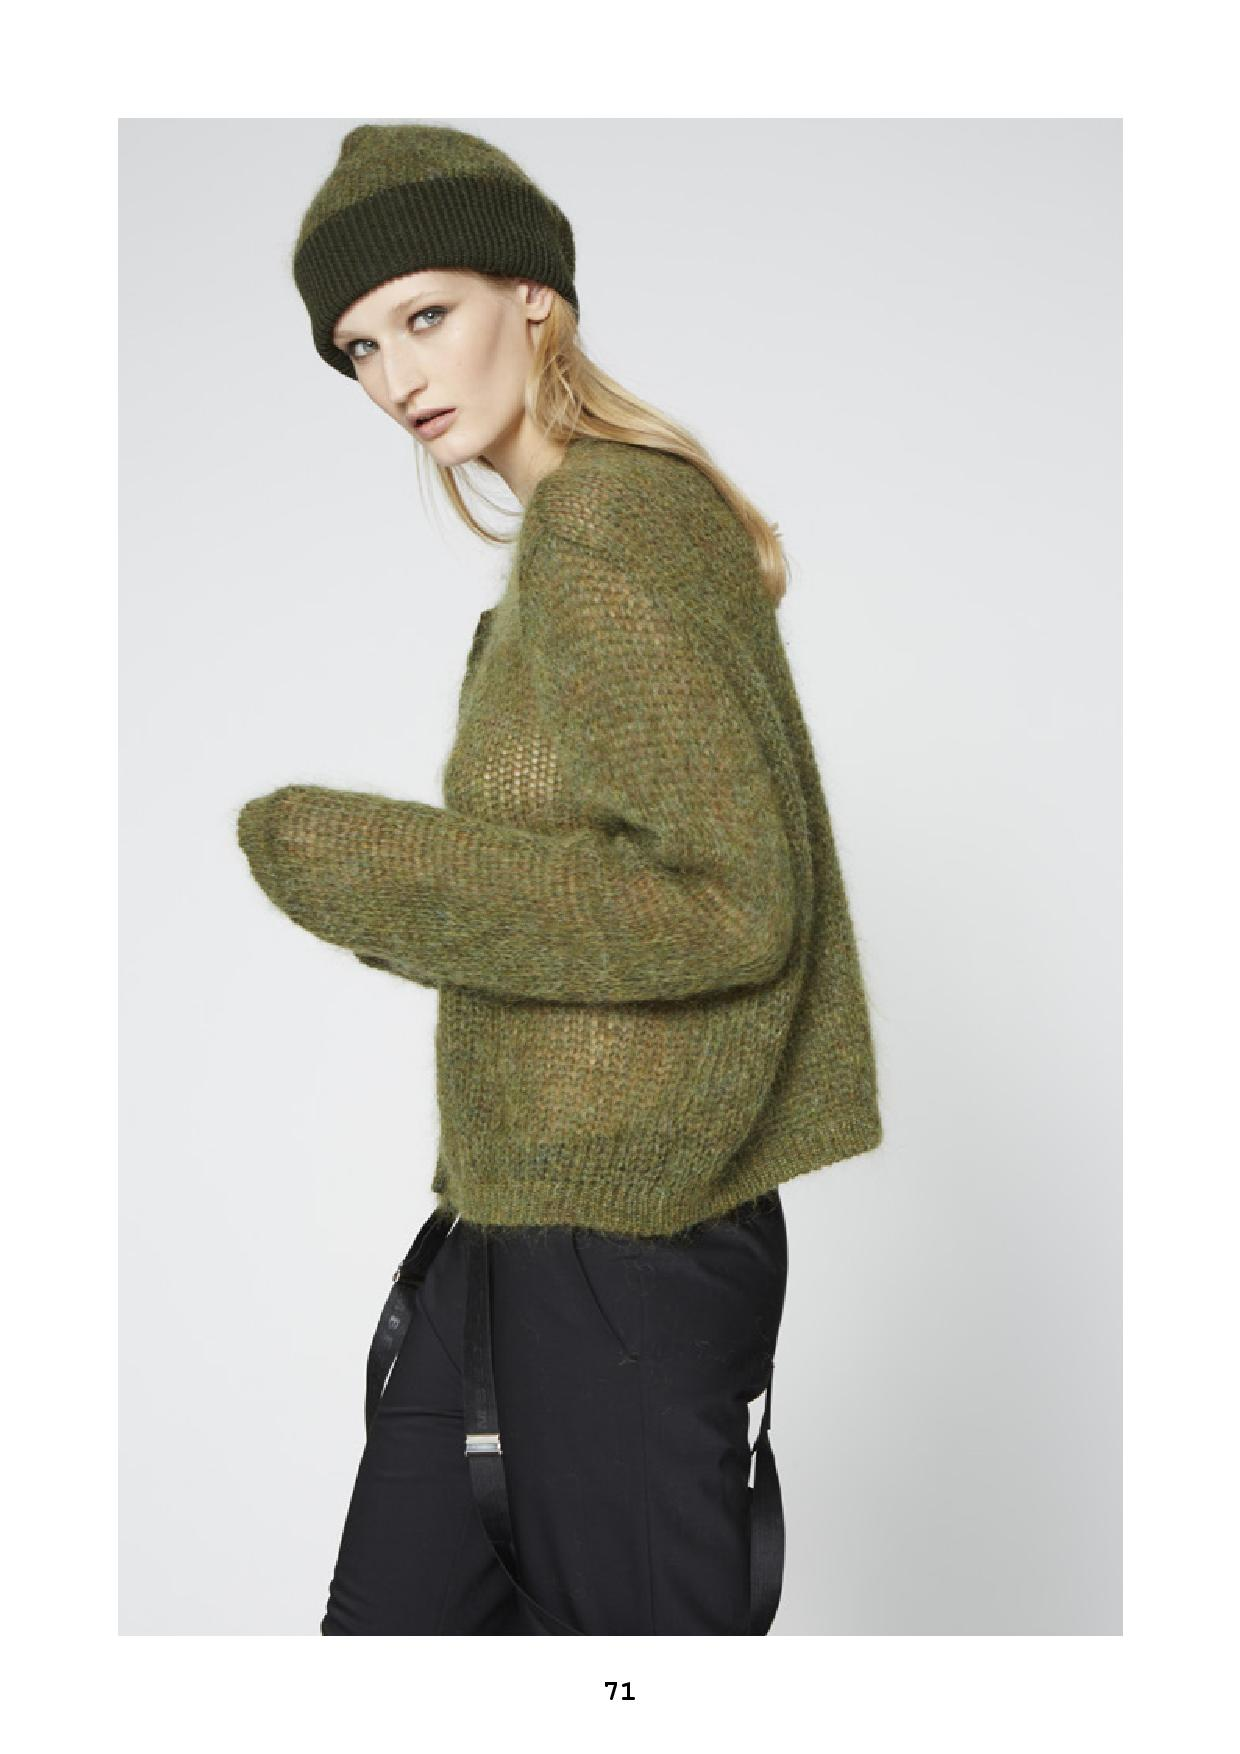 aw17 women s keypieces-page-072